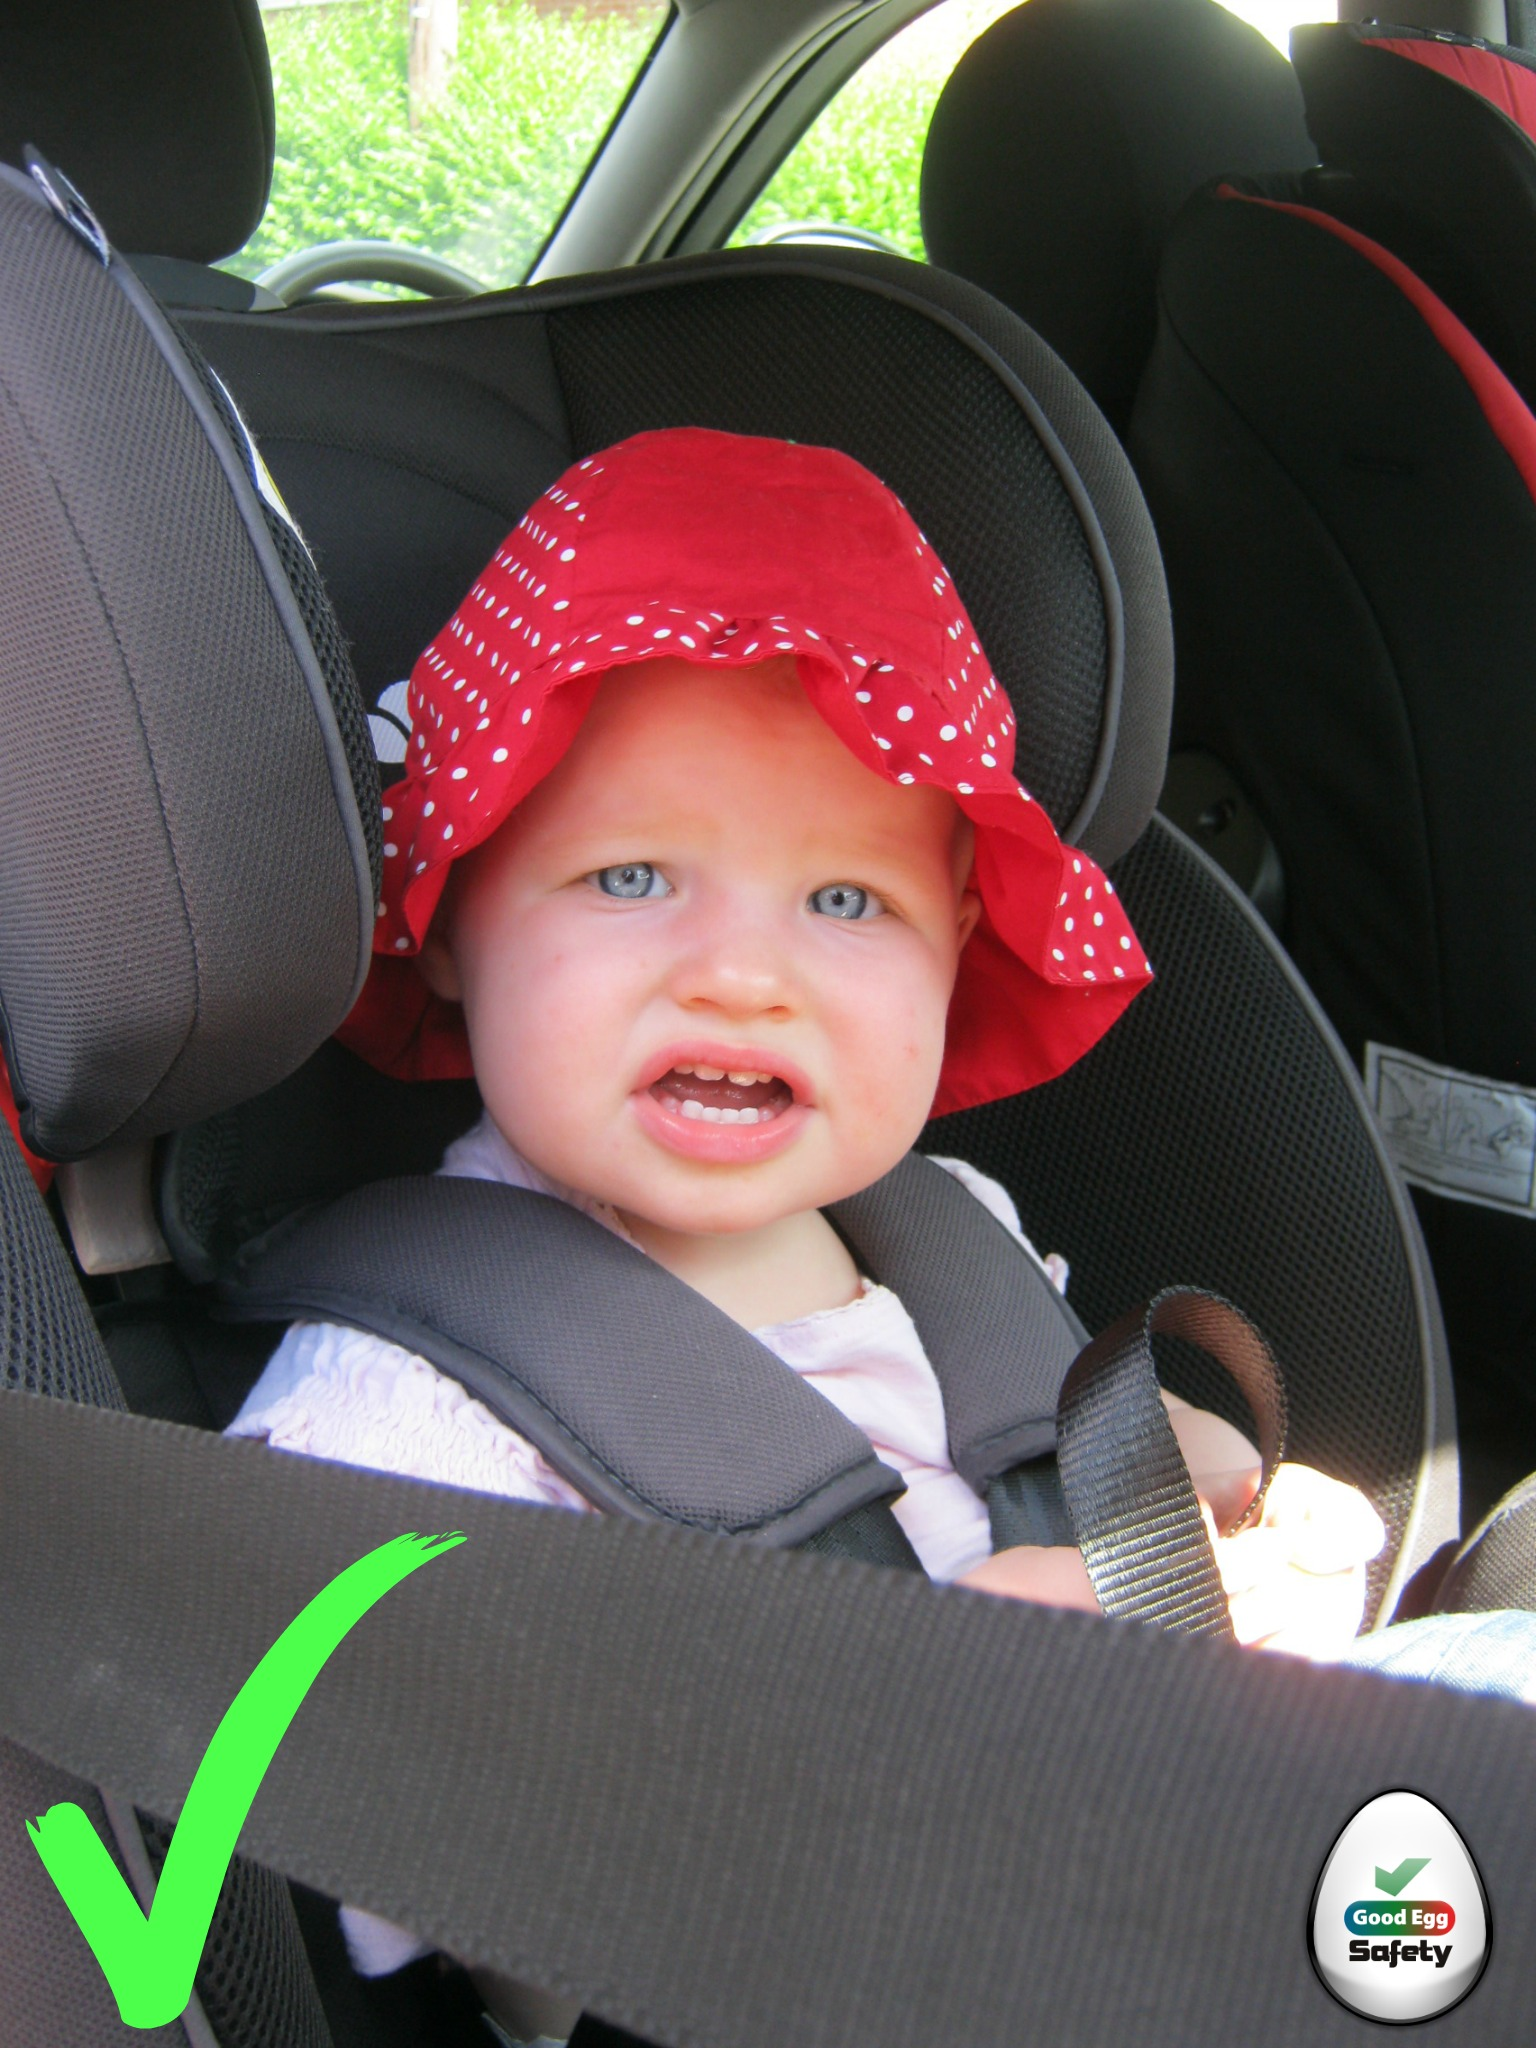 Newborn Car Seat Set Up 5 Steps To Strap Your Child Into Their Car Seat Correctly